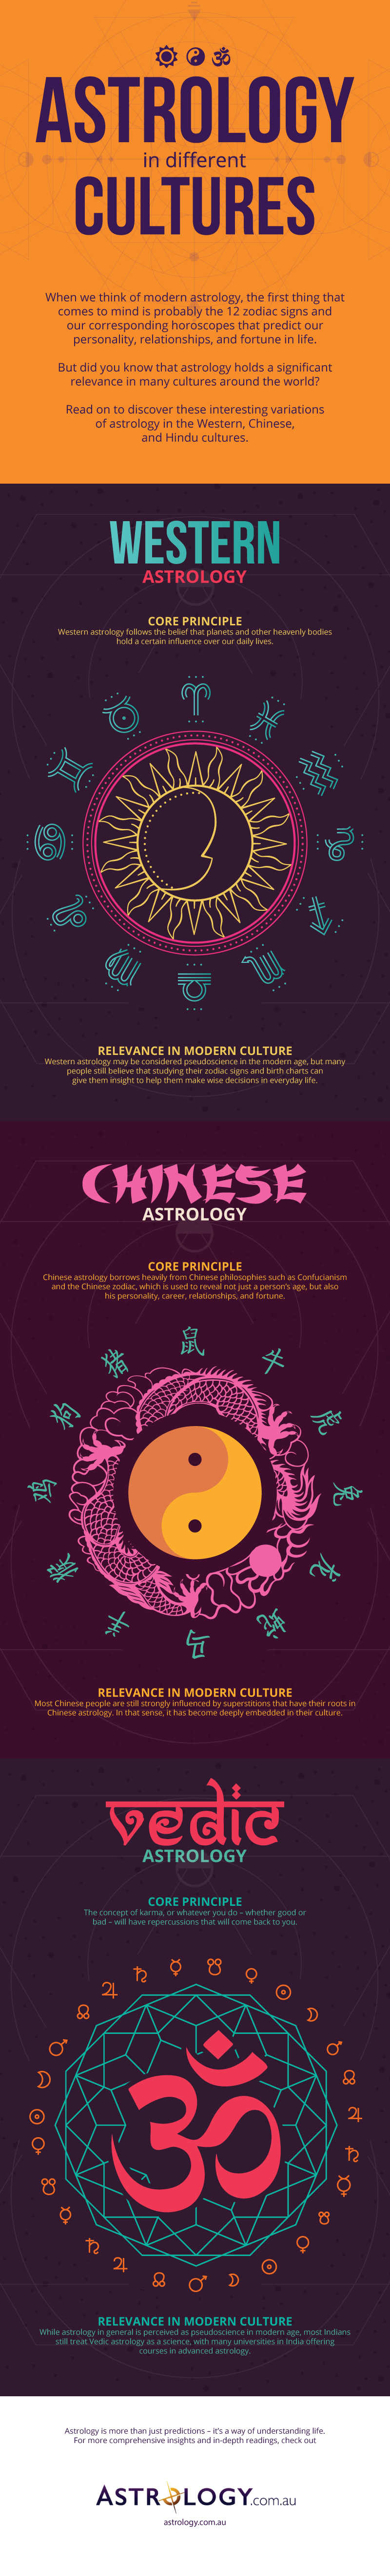 Astrology in different cultures